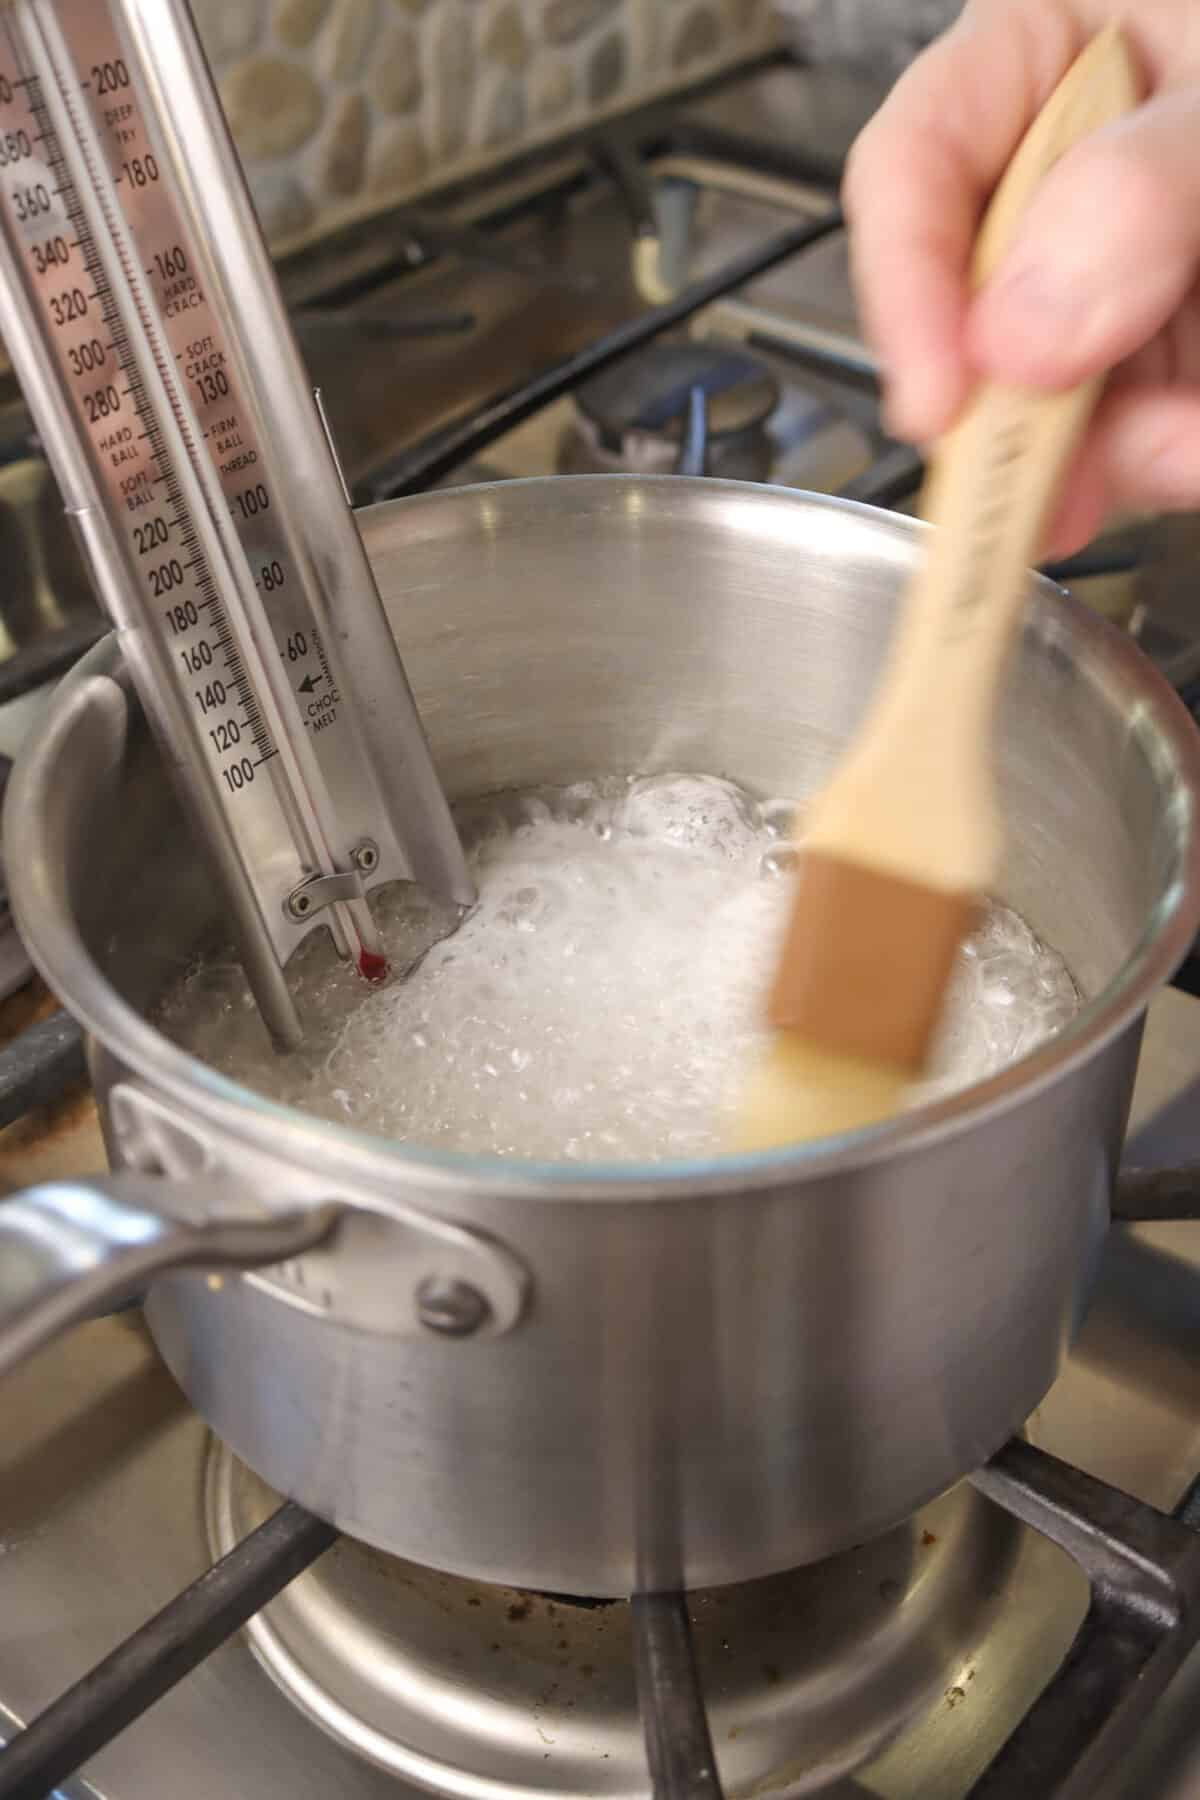 corn syrup mixture boiling with thermometer and sides being brushed down